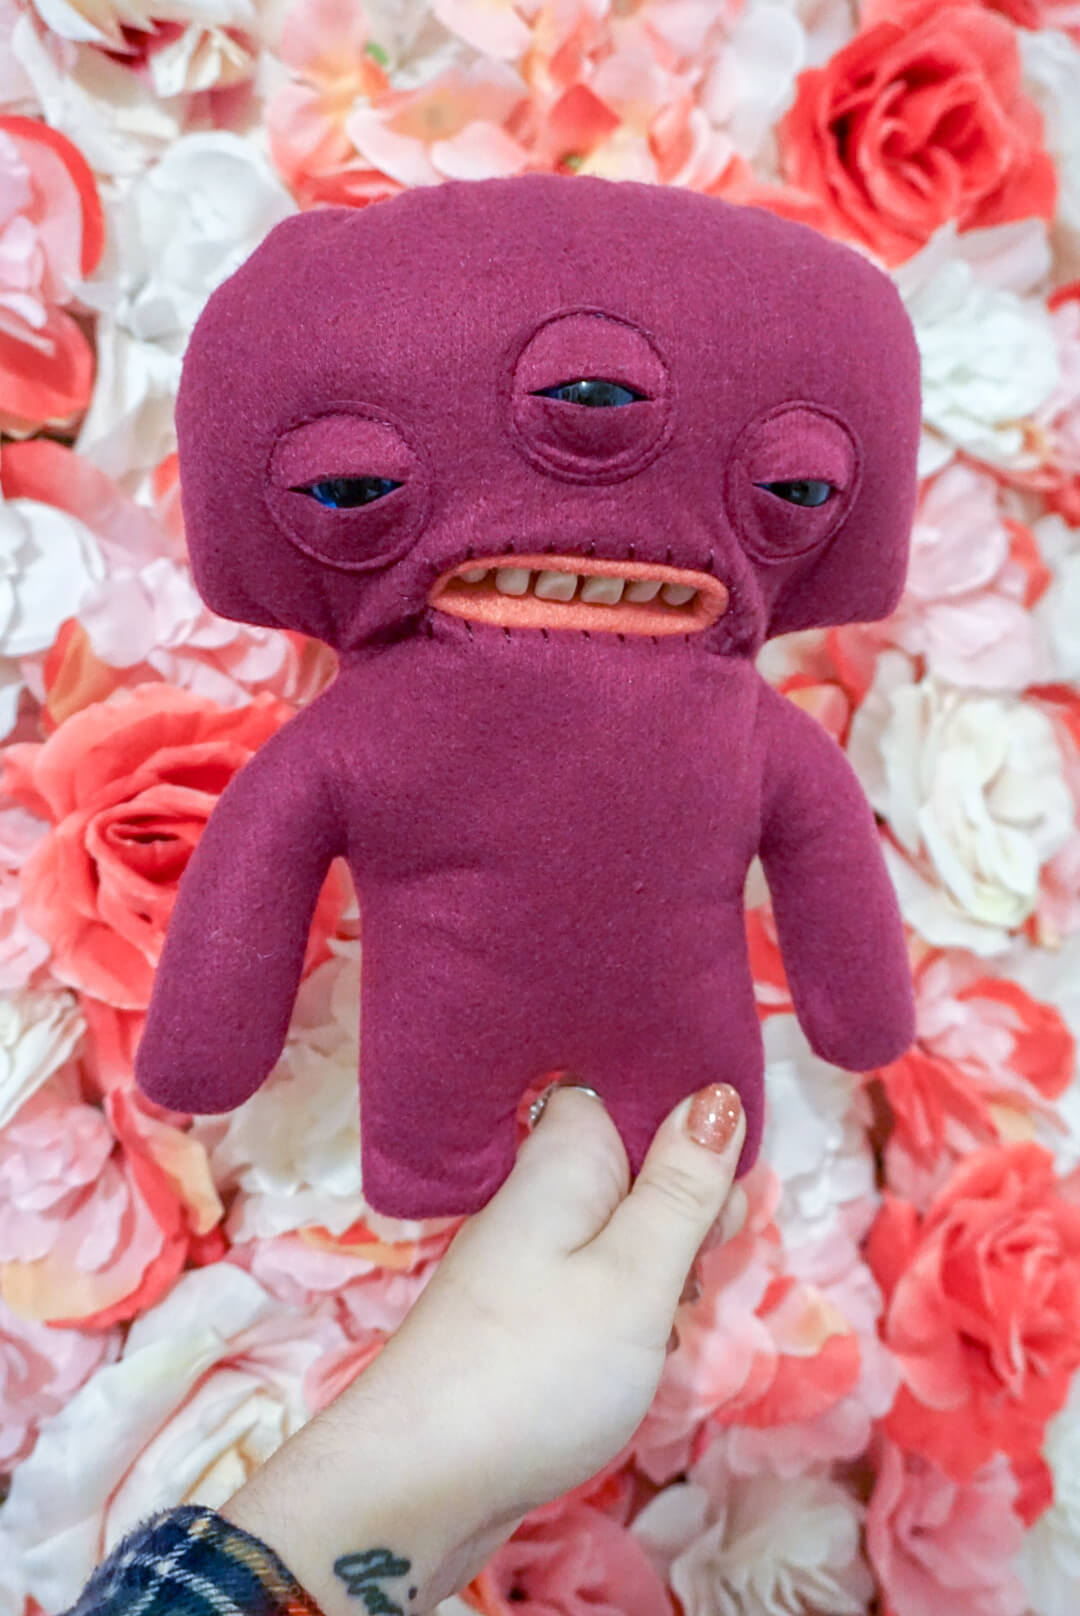 Fugglers: The Funniest Ugliest Toys